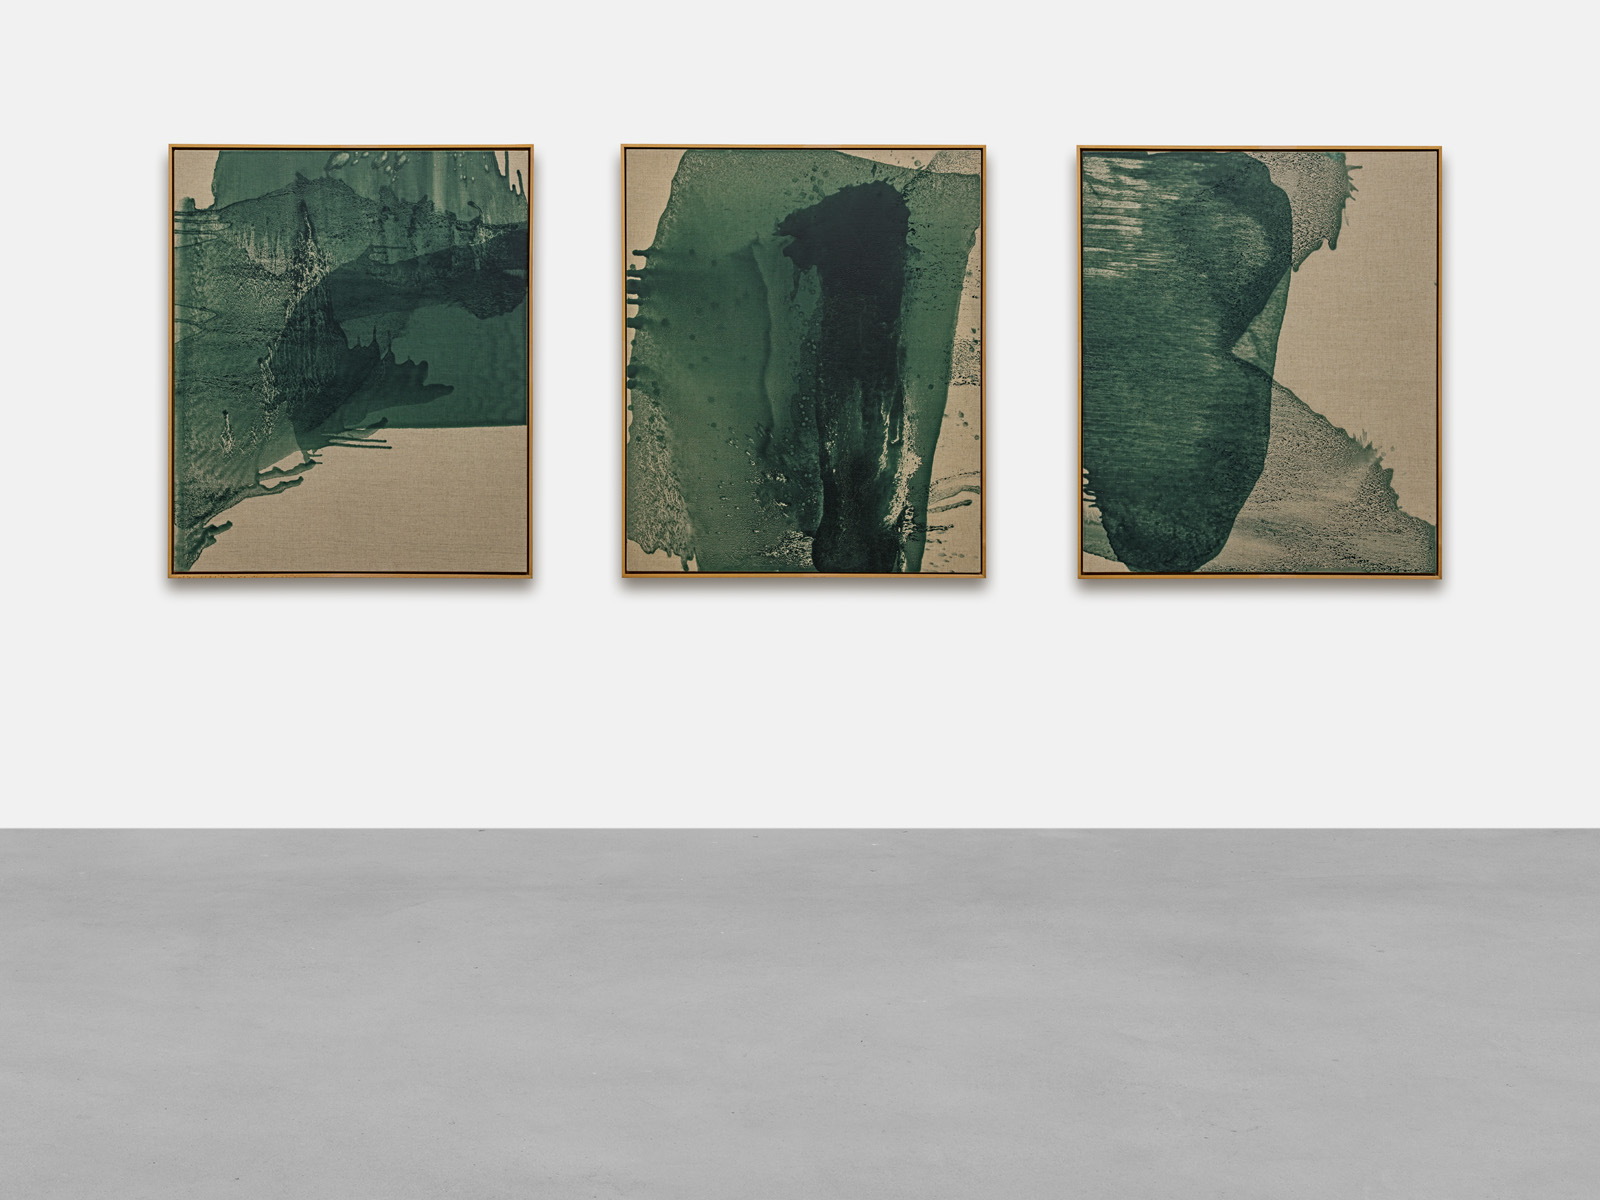 Cabrita works from 'The moss suite', 2019 Woodtech (cin), lasur classic mate color 6392 and solvent on raw canvas Each 120.5 x 101 cm | 47 1/2 x 39 3/4 in Photo: Lepkowski Studios Berlin © the artist and KEWENIG Berlin